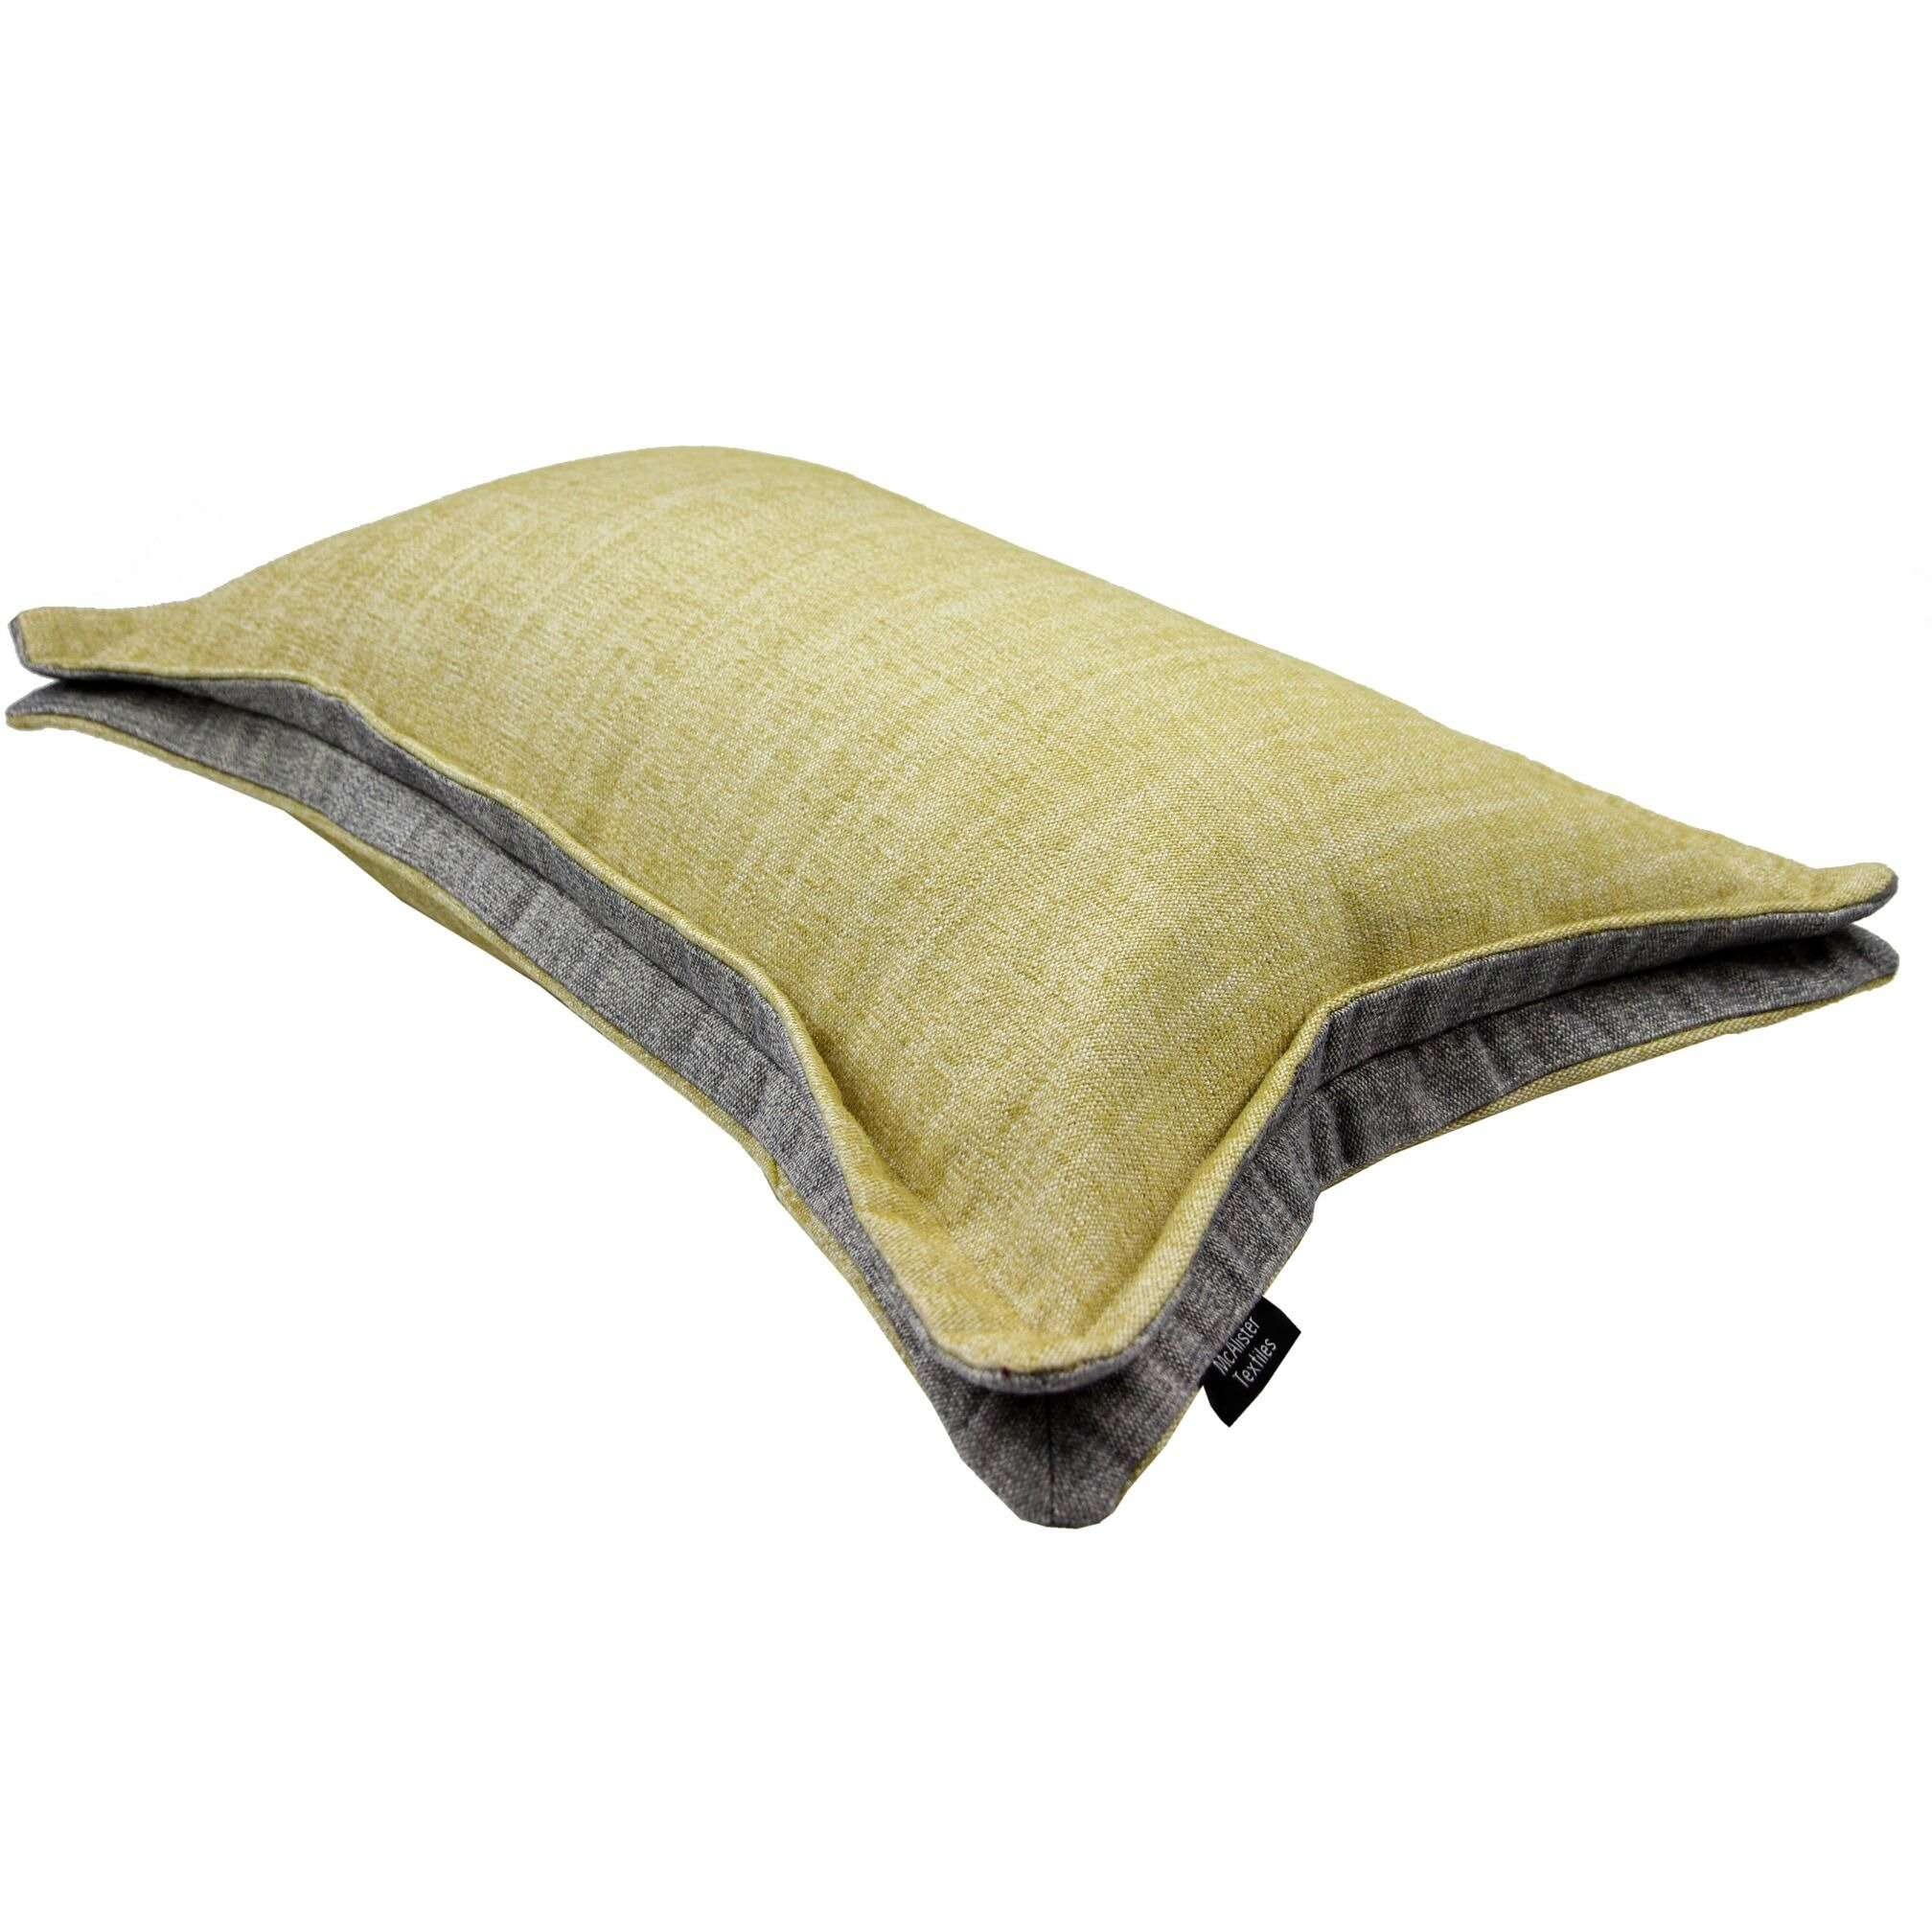 McAlister Textiles Rhumba Accent Ochre Yellow + Grey Pillow Pillow